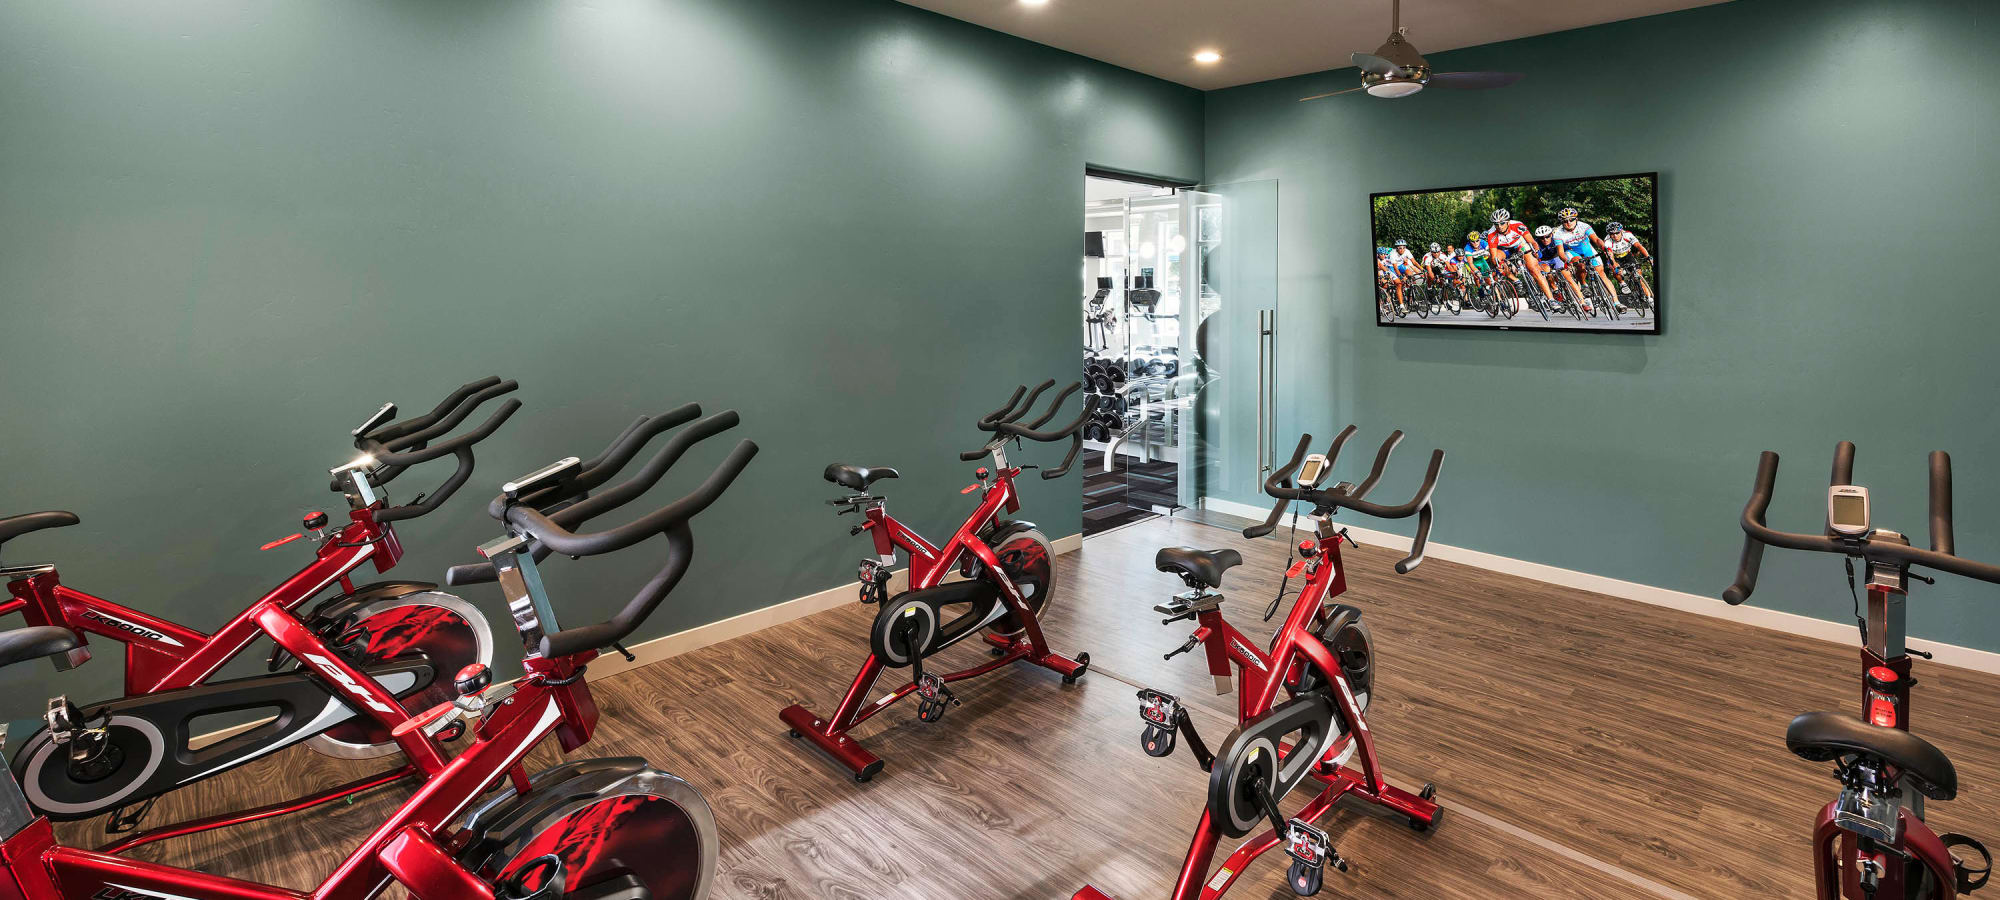 Exercise bikes in the spin center at Mira Santi in Chandler, Arizona